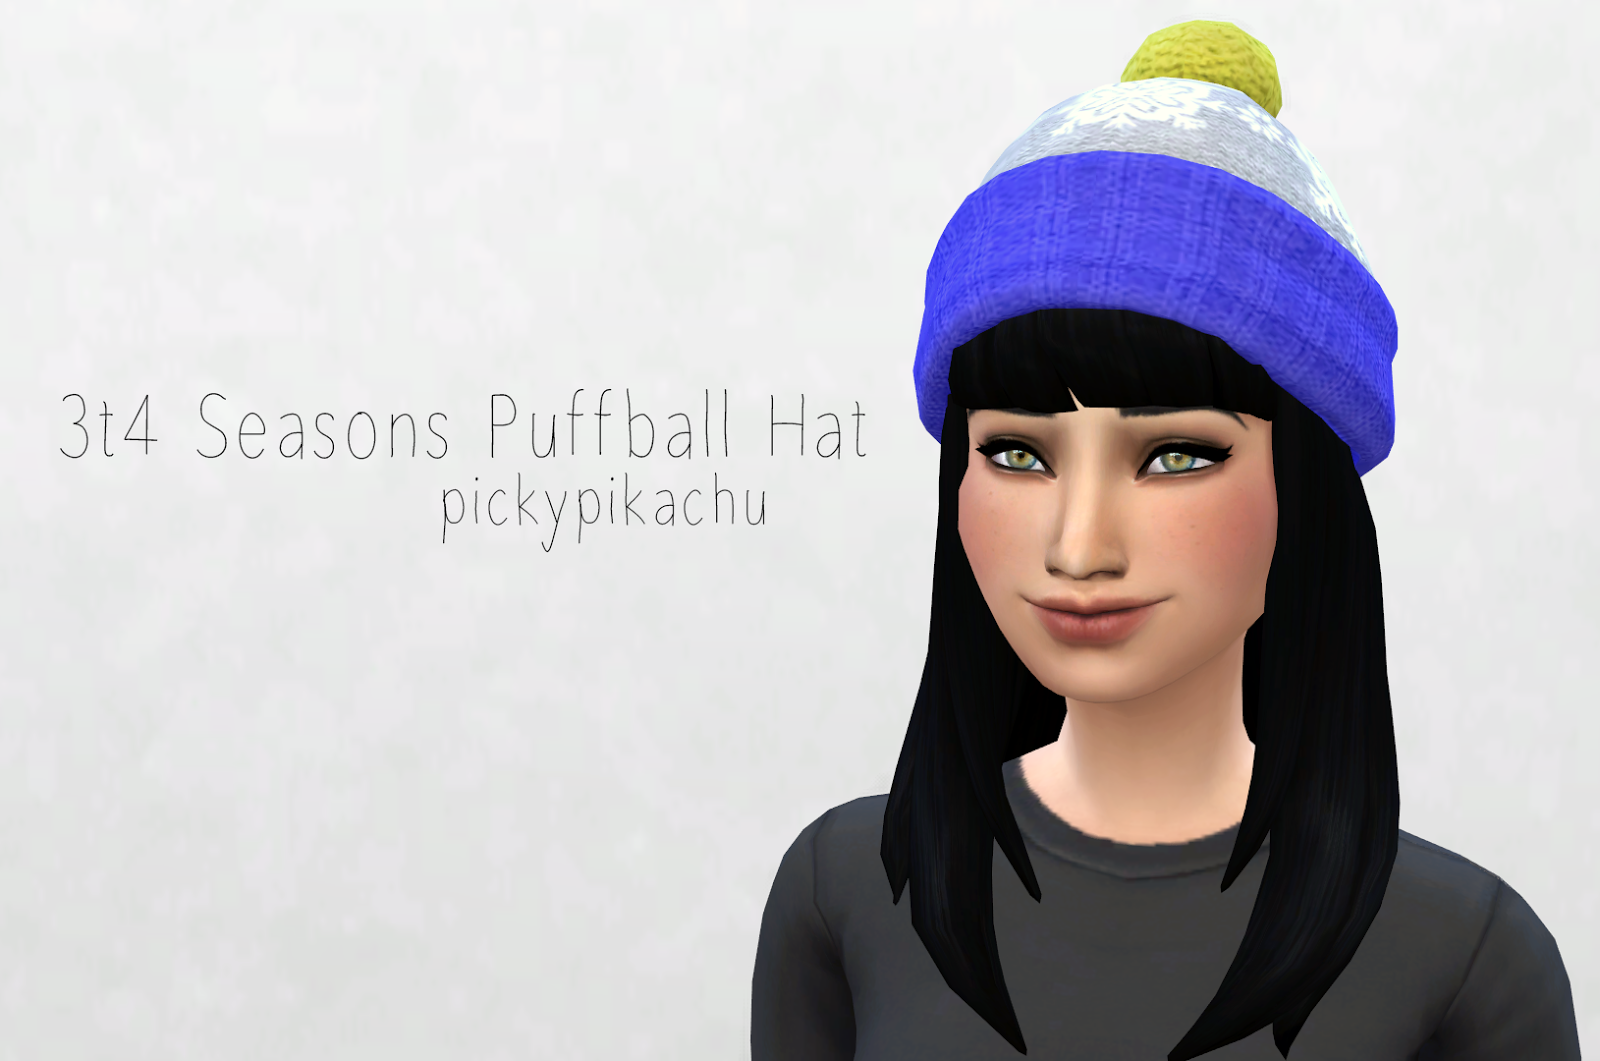 TS3 to TS4 Seasons Puffball Hat by Pickypikachu